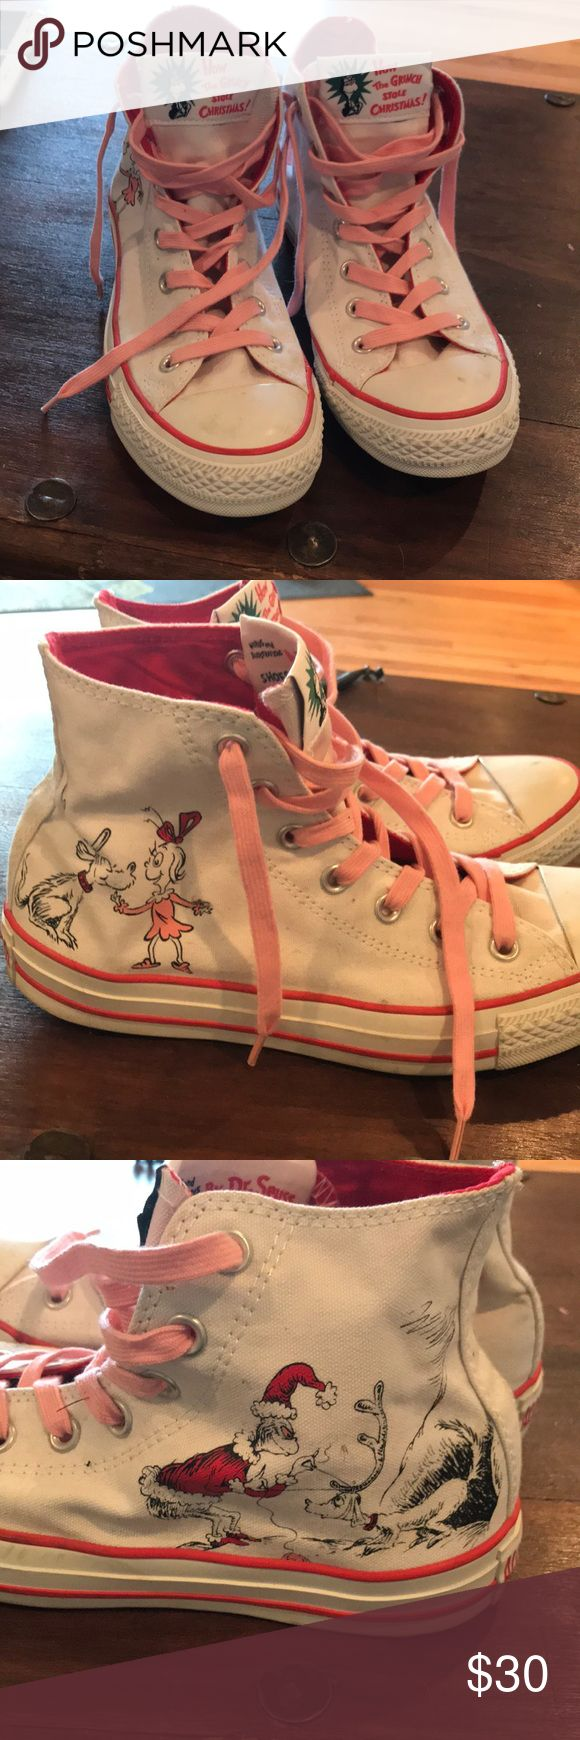 How the grinch stole Christmas converse size 8 How the grinch stole Christmas converse size 8 Converse Shoes Sneakers